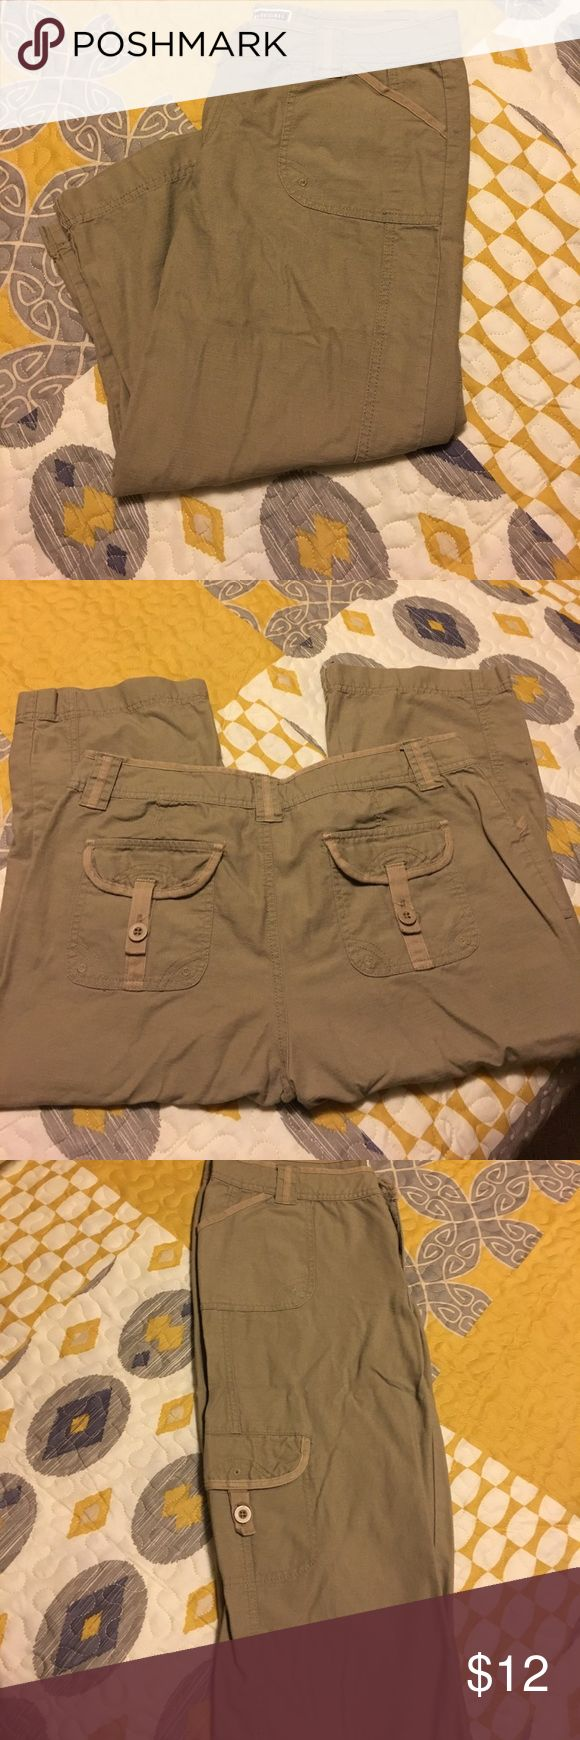 """Women's khaki capris pants 100% cotton fabric, soft and comfortable material, cargo pocket in one leg side, 2 pockets with buttons in back, 21 1/2 """" inseam, invisible clap closure in front with zipper, comes from a smoke free and pet free home. Route 66 Pants Capris"""